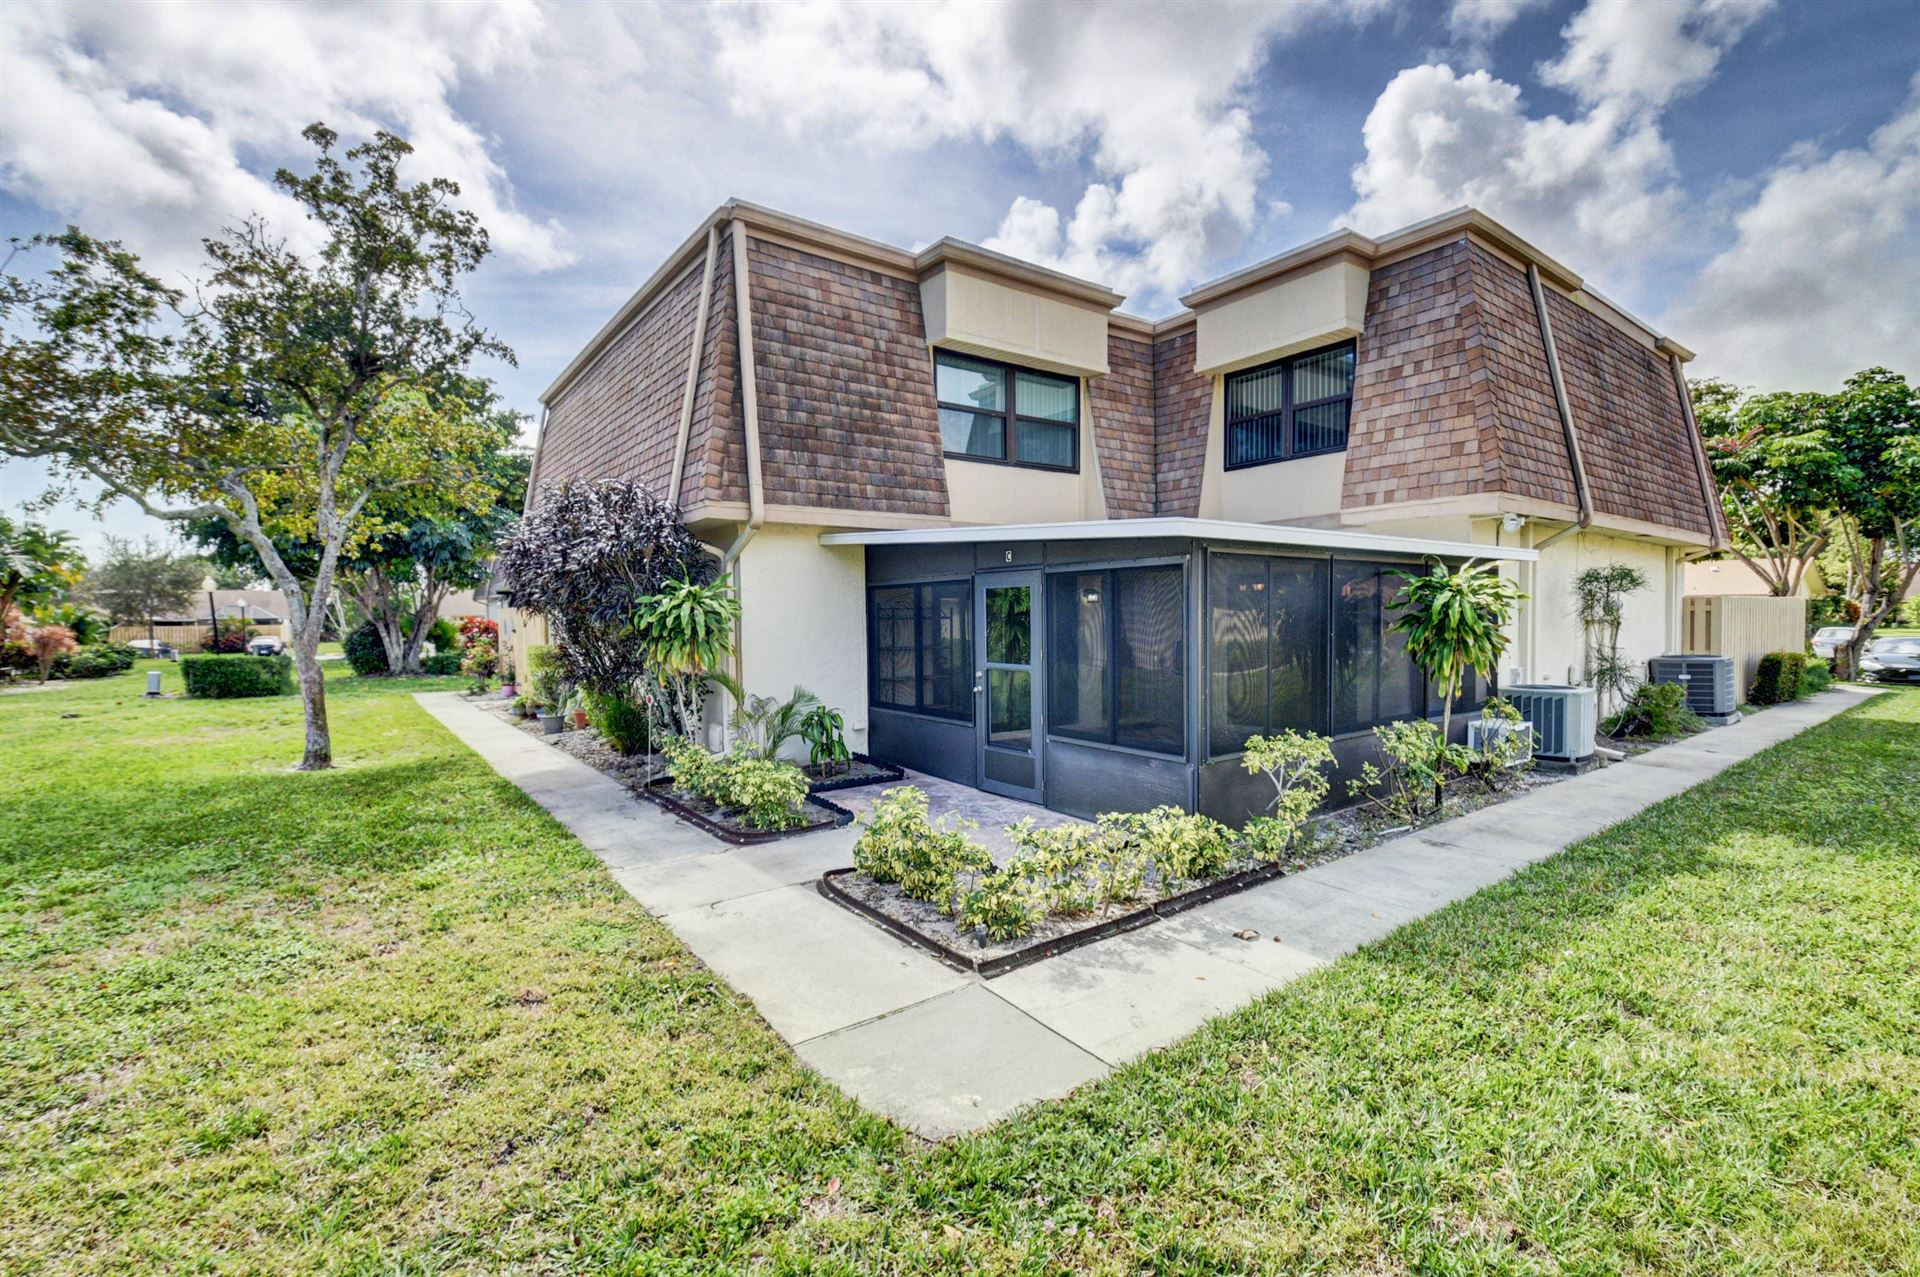 763 NW 30th Avenue #C, Delray Beach, FL 33445 - #: RX-10600725